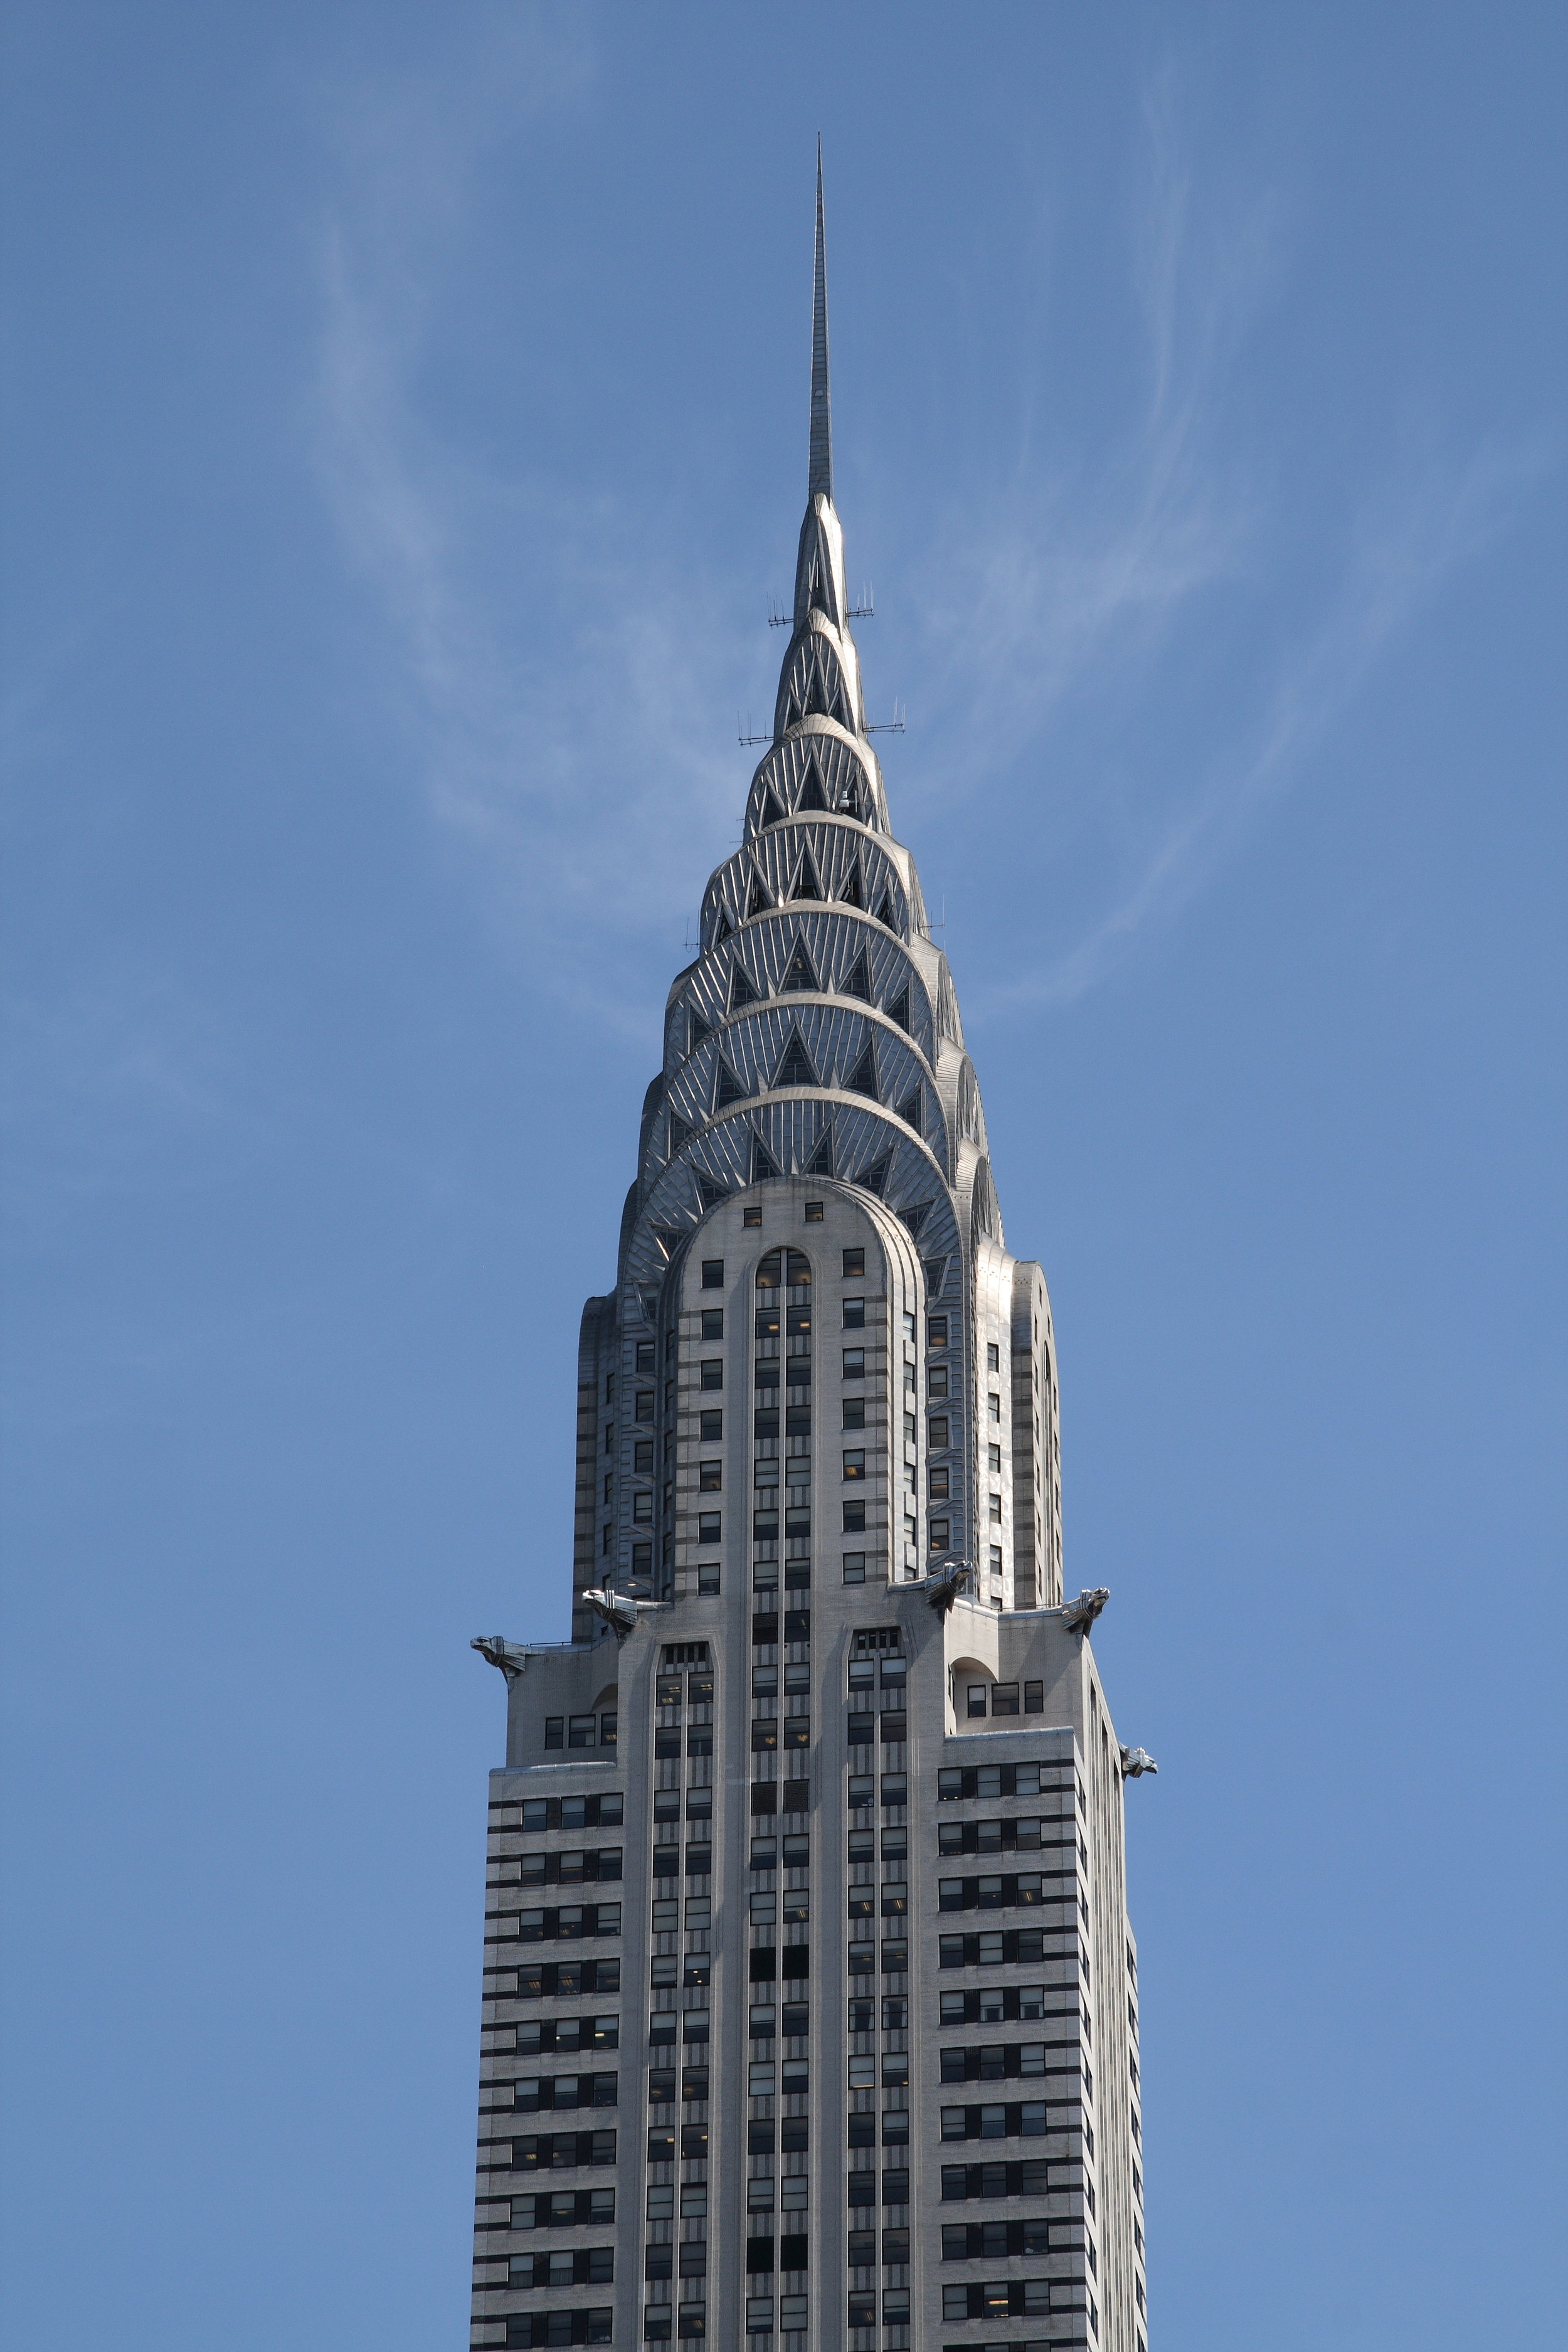 The Chrysler Building in NYC